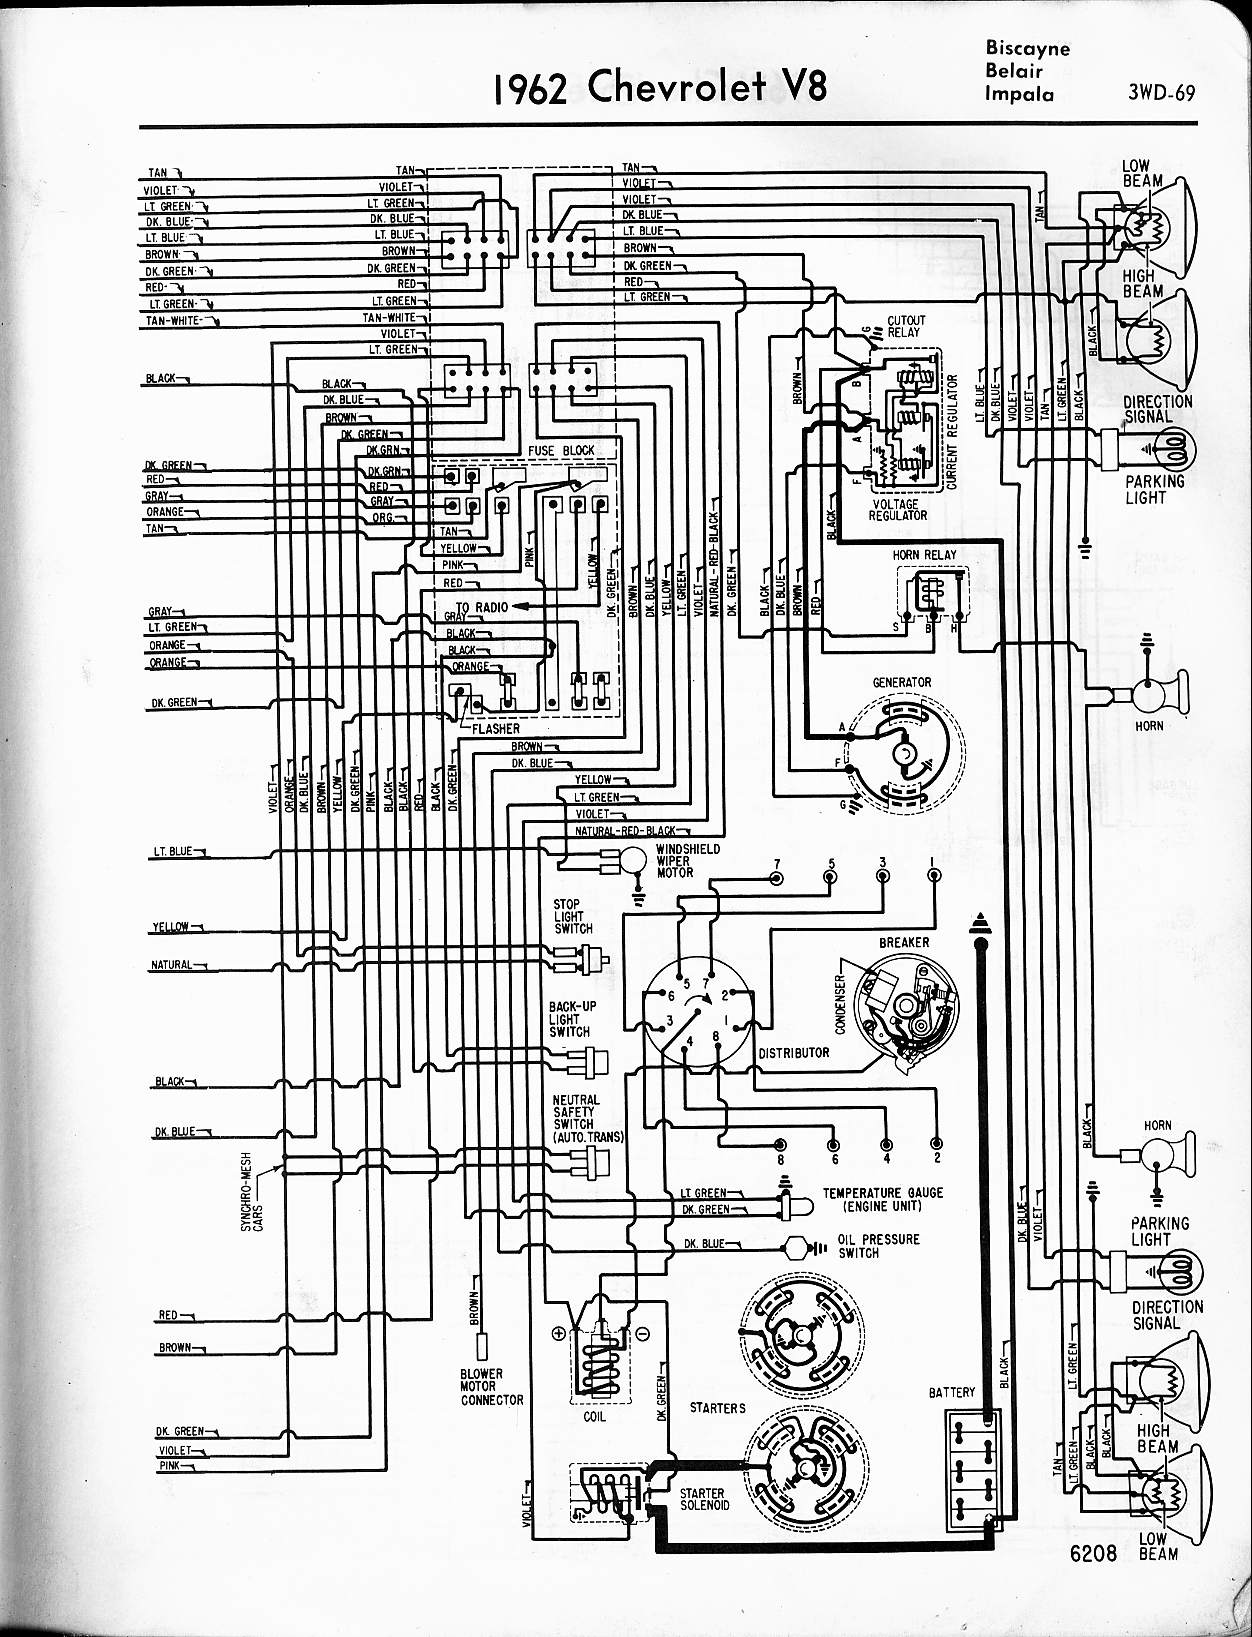 1968 impala wiring diagram wiring diagram69 impala wiring diagram wiring diagram1969 impala fuse box wiring library1962 impala wiring diagram just wiring